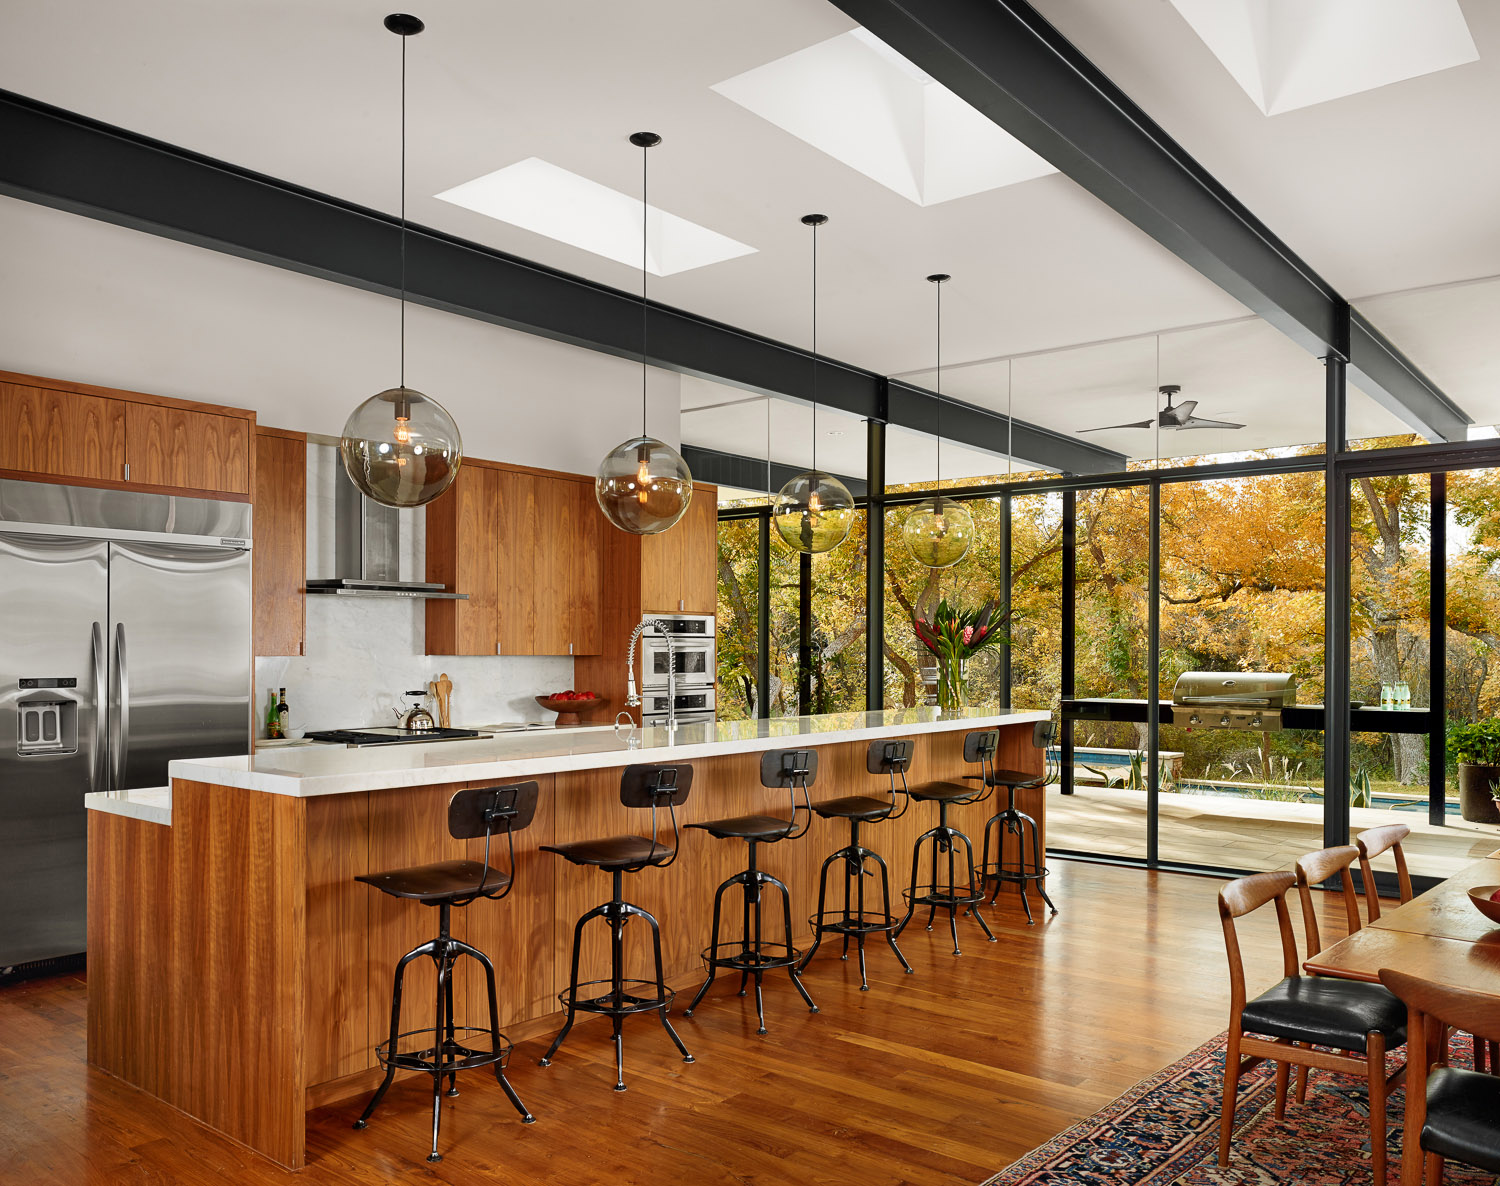 Walnut and reclaimed teak bring warmth to the structural steel.